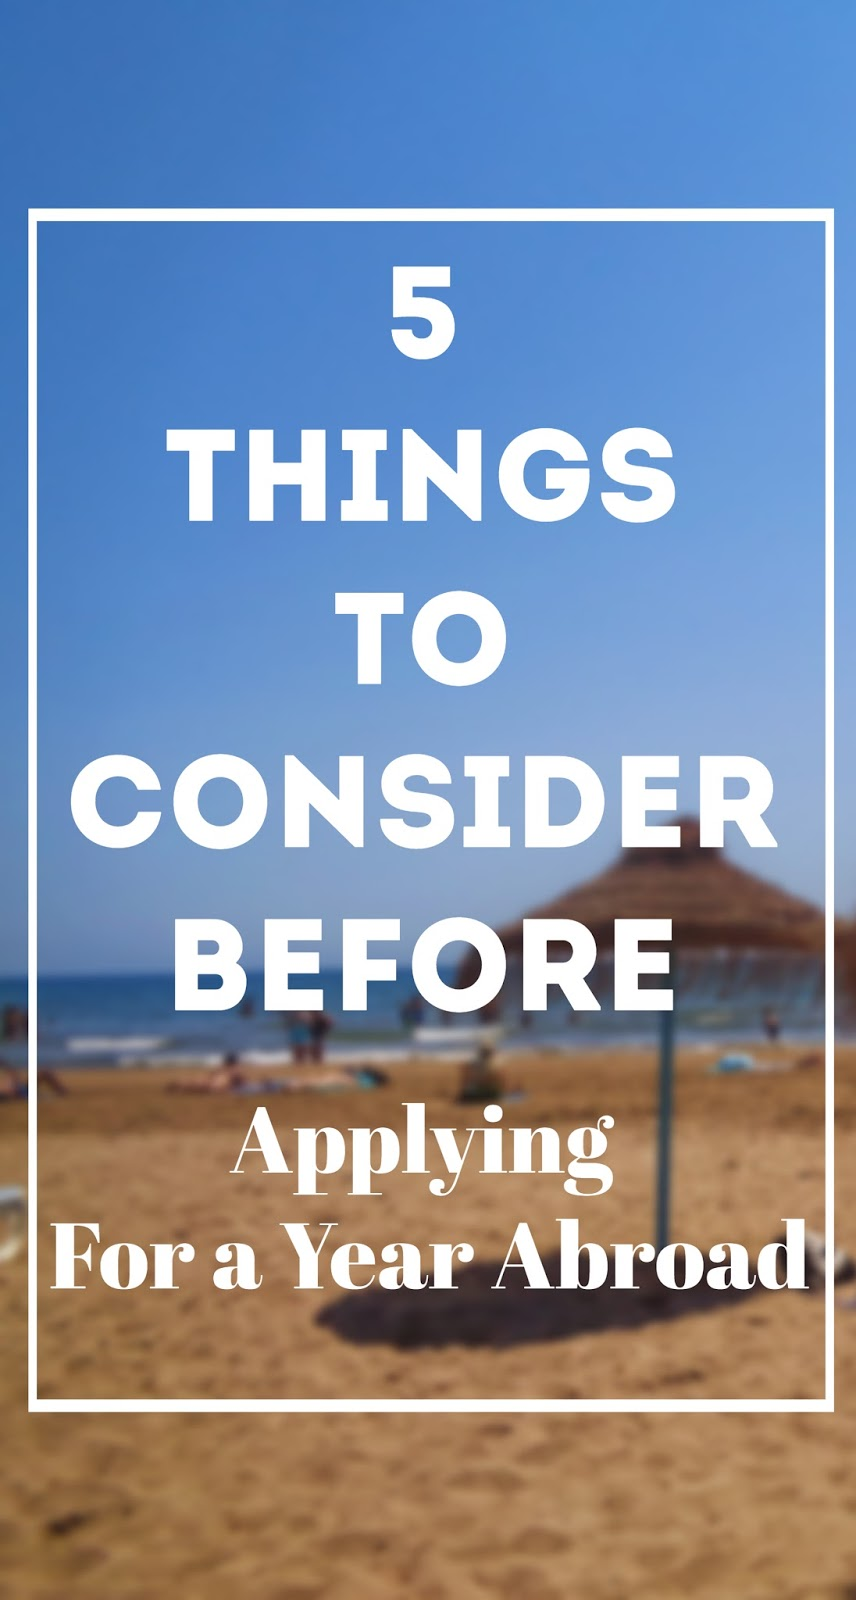 5 Things T Consider Before Applying For A Year Abroad